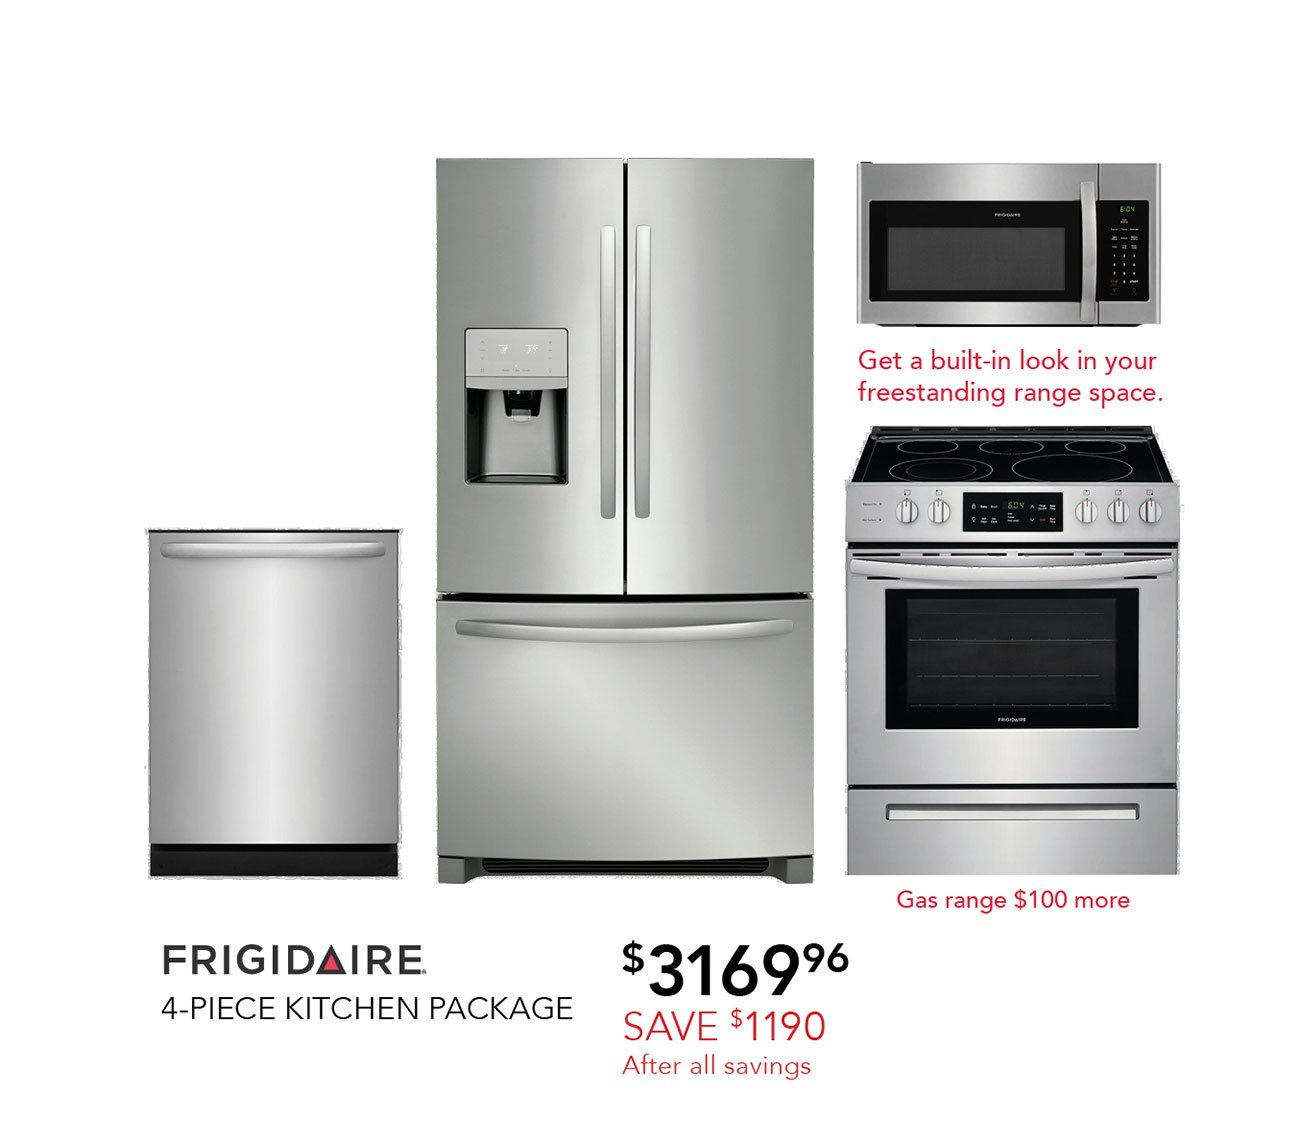 Frigidaire-kitchen-package